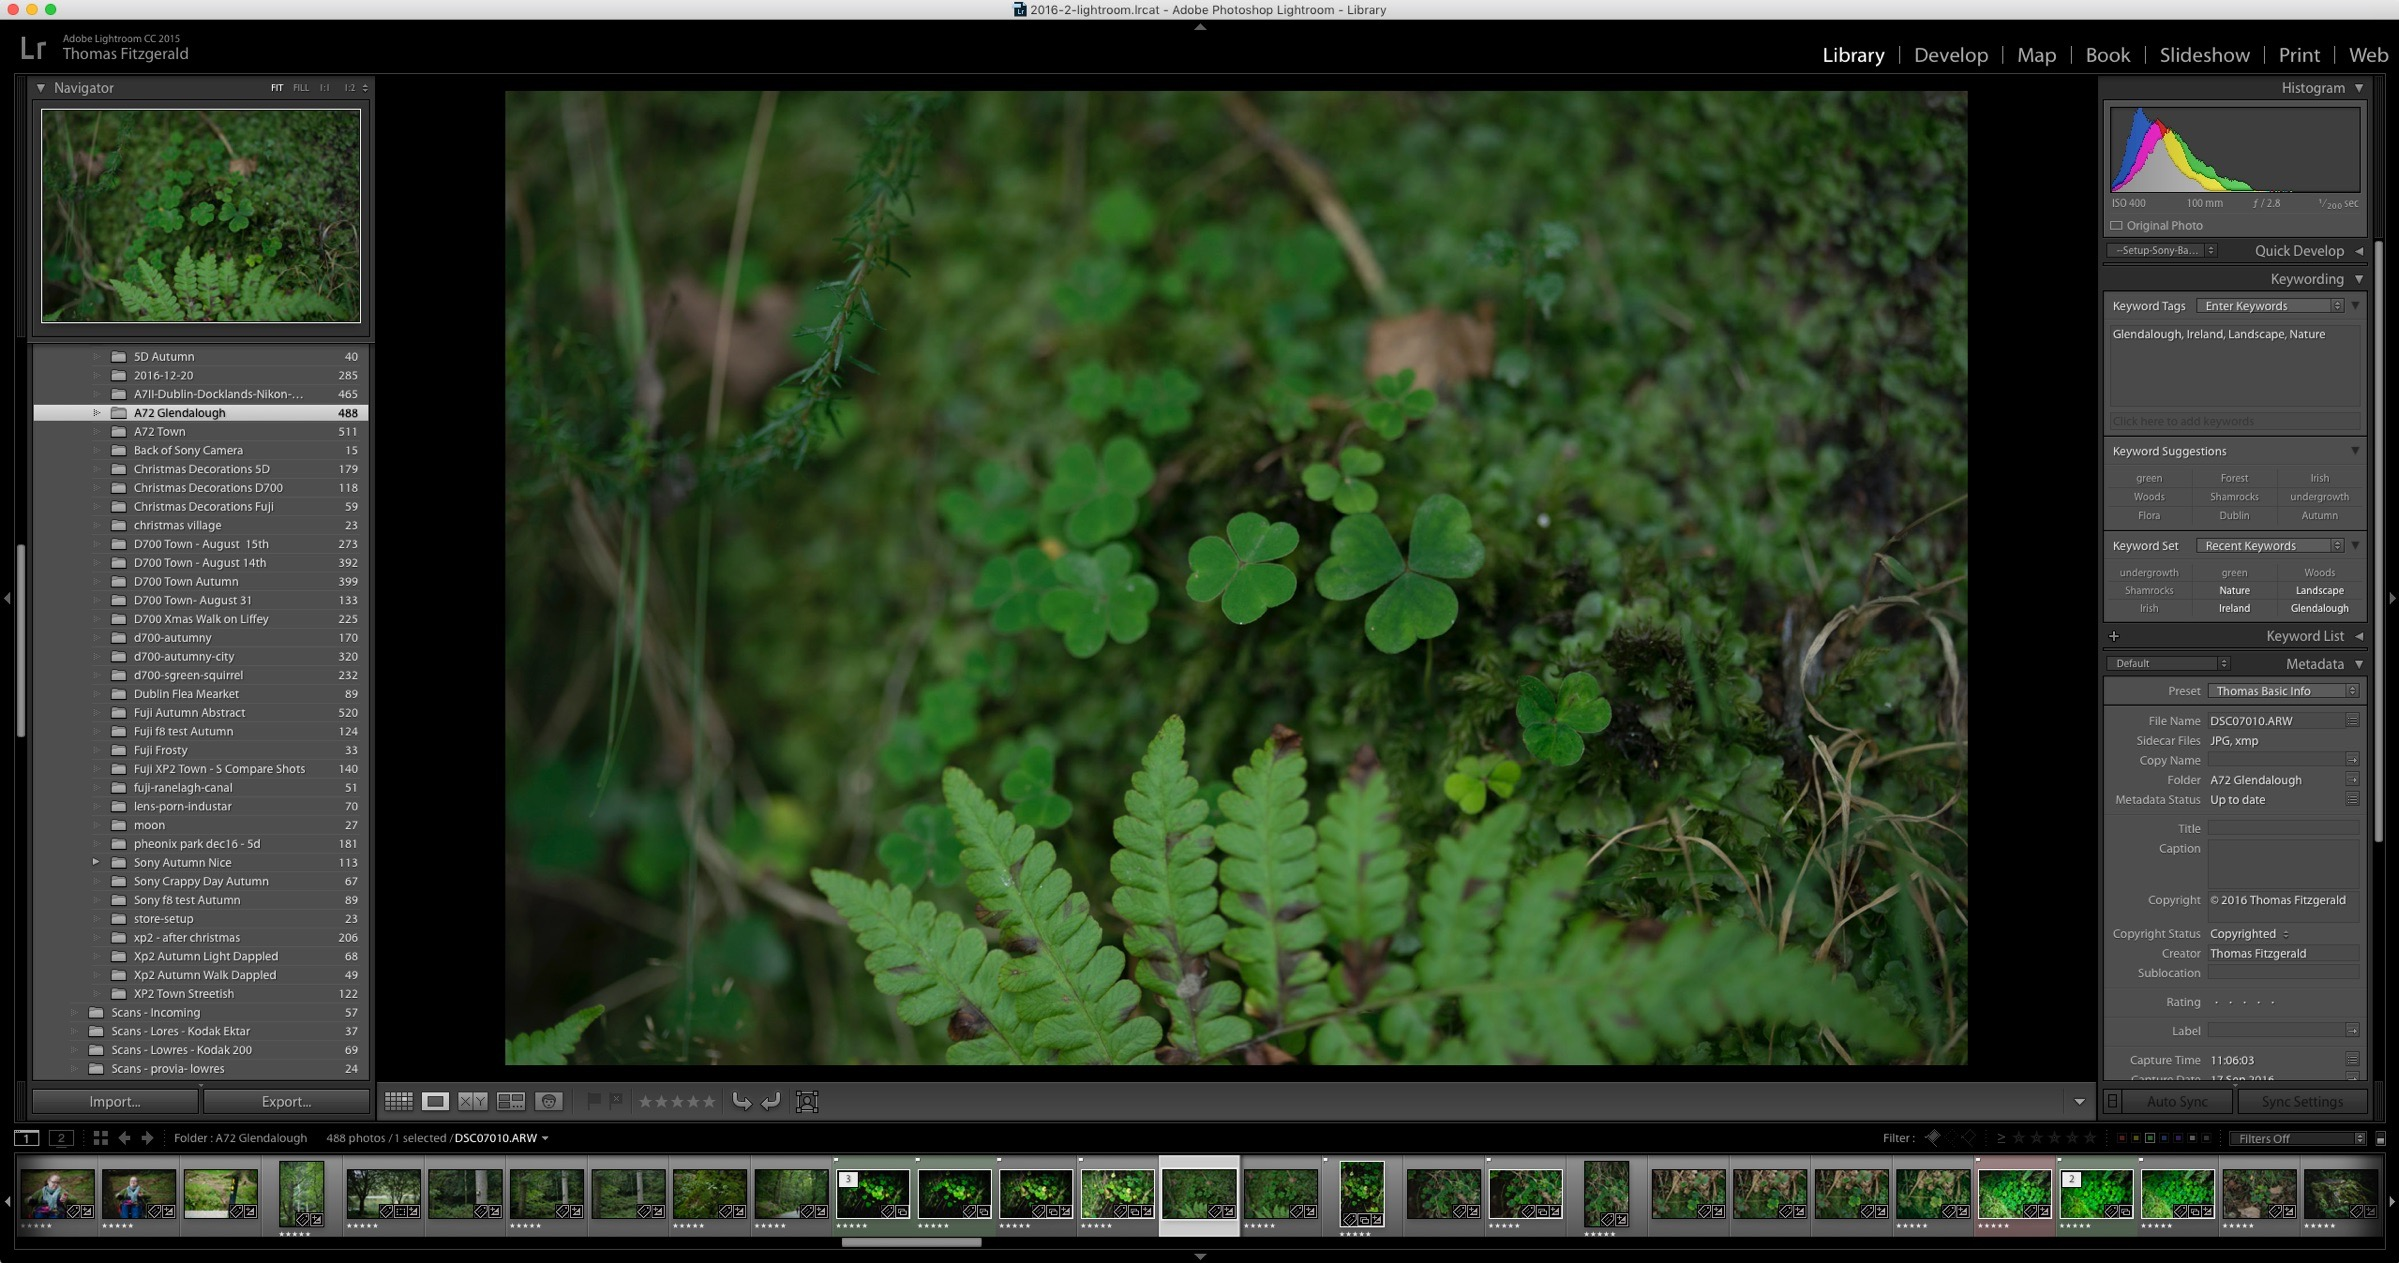 One of the raw un-edited images in Lightroom before any editing